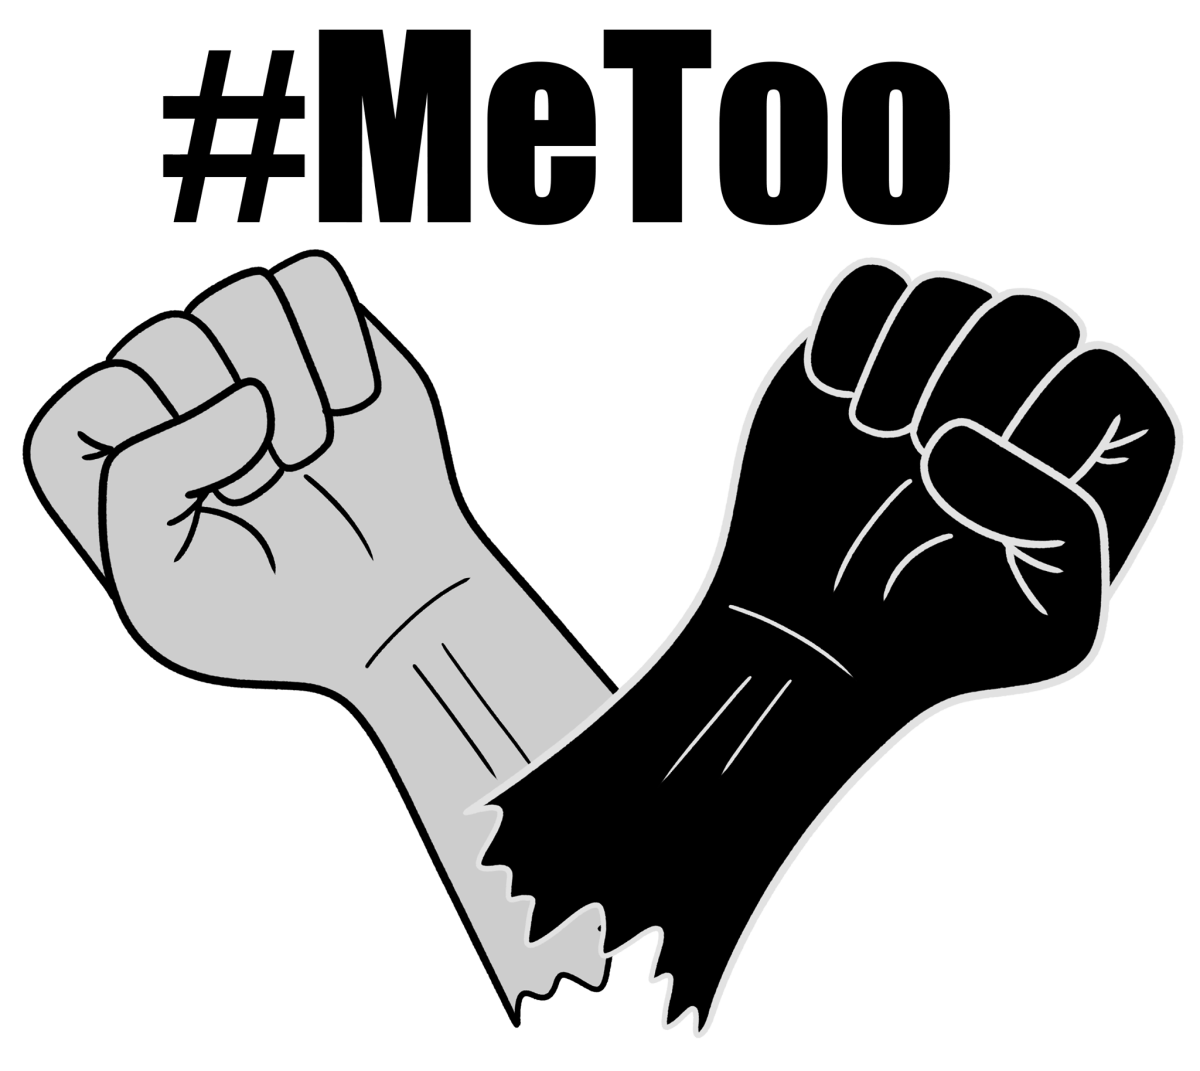 #MeToo: Use an inclusive movement to share your truth